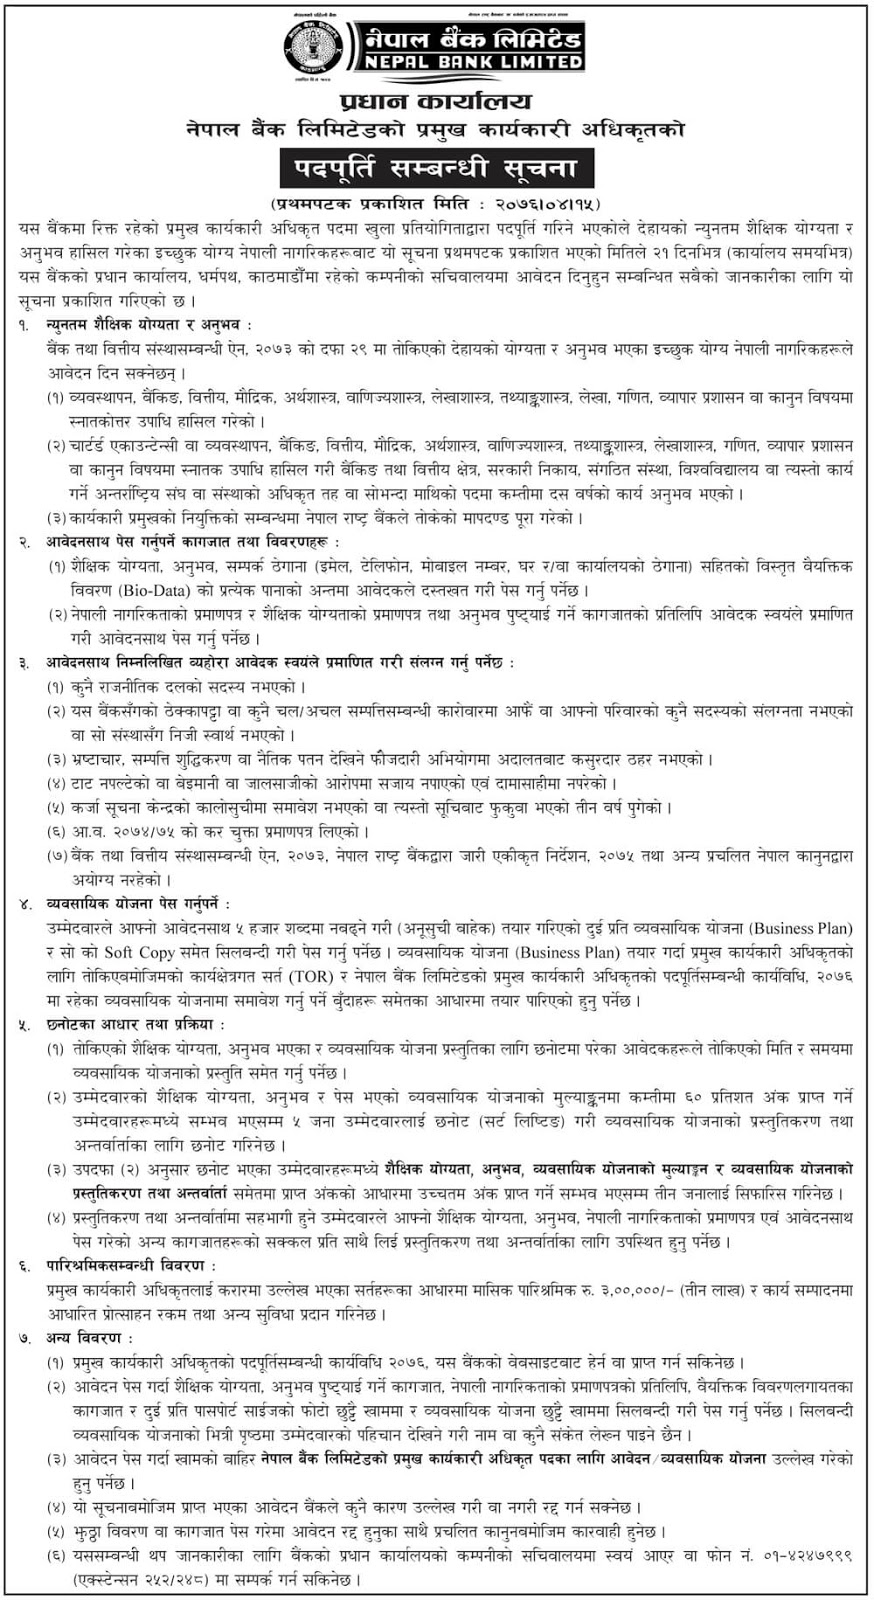 Nepal Bank Limited Vacancy Notice for CEO